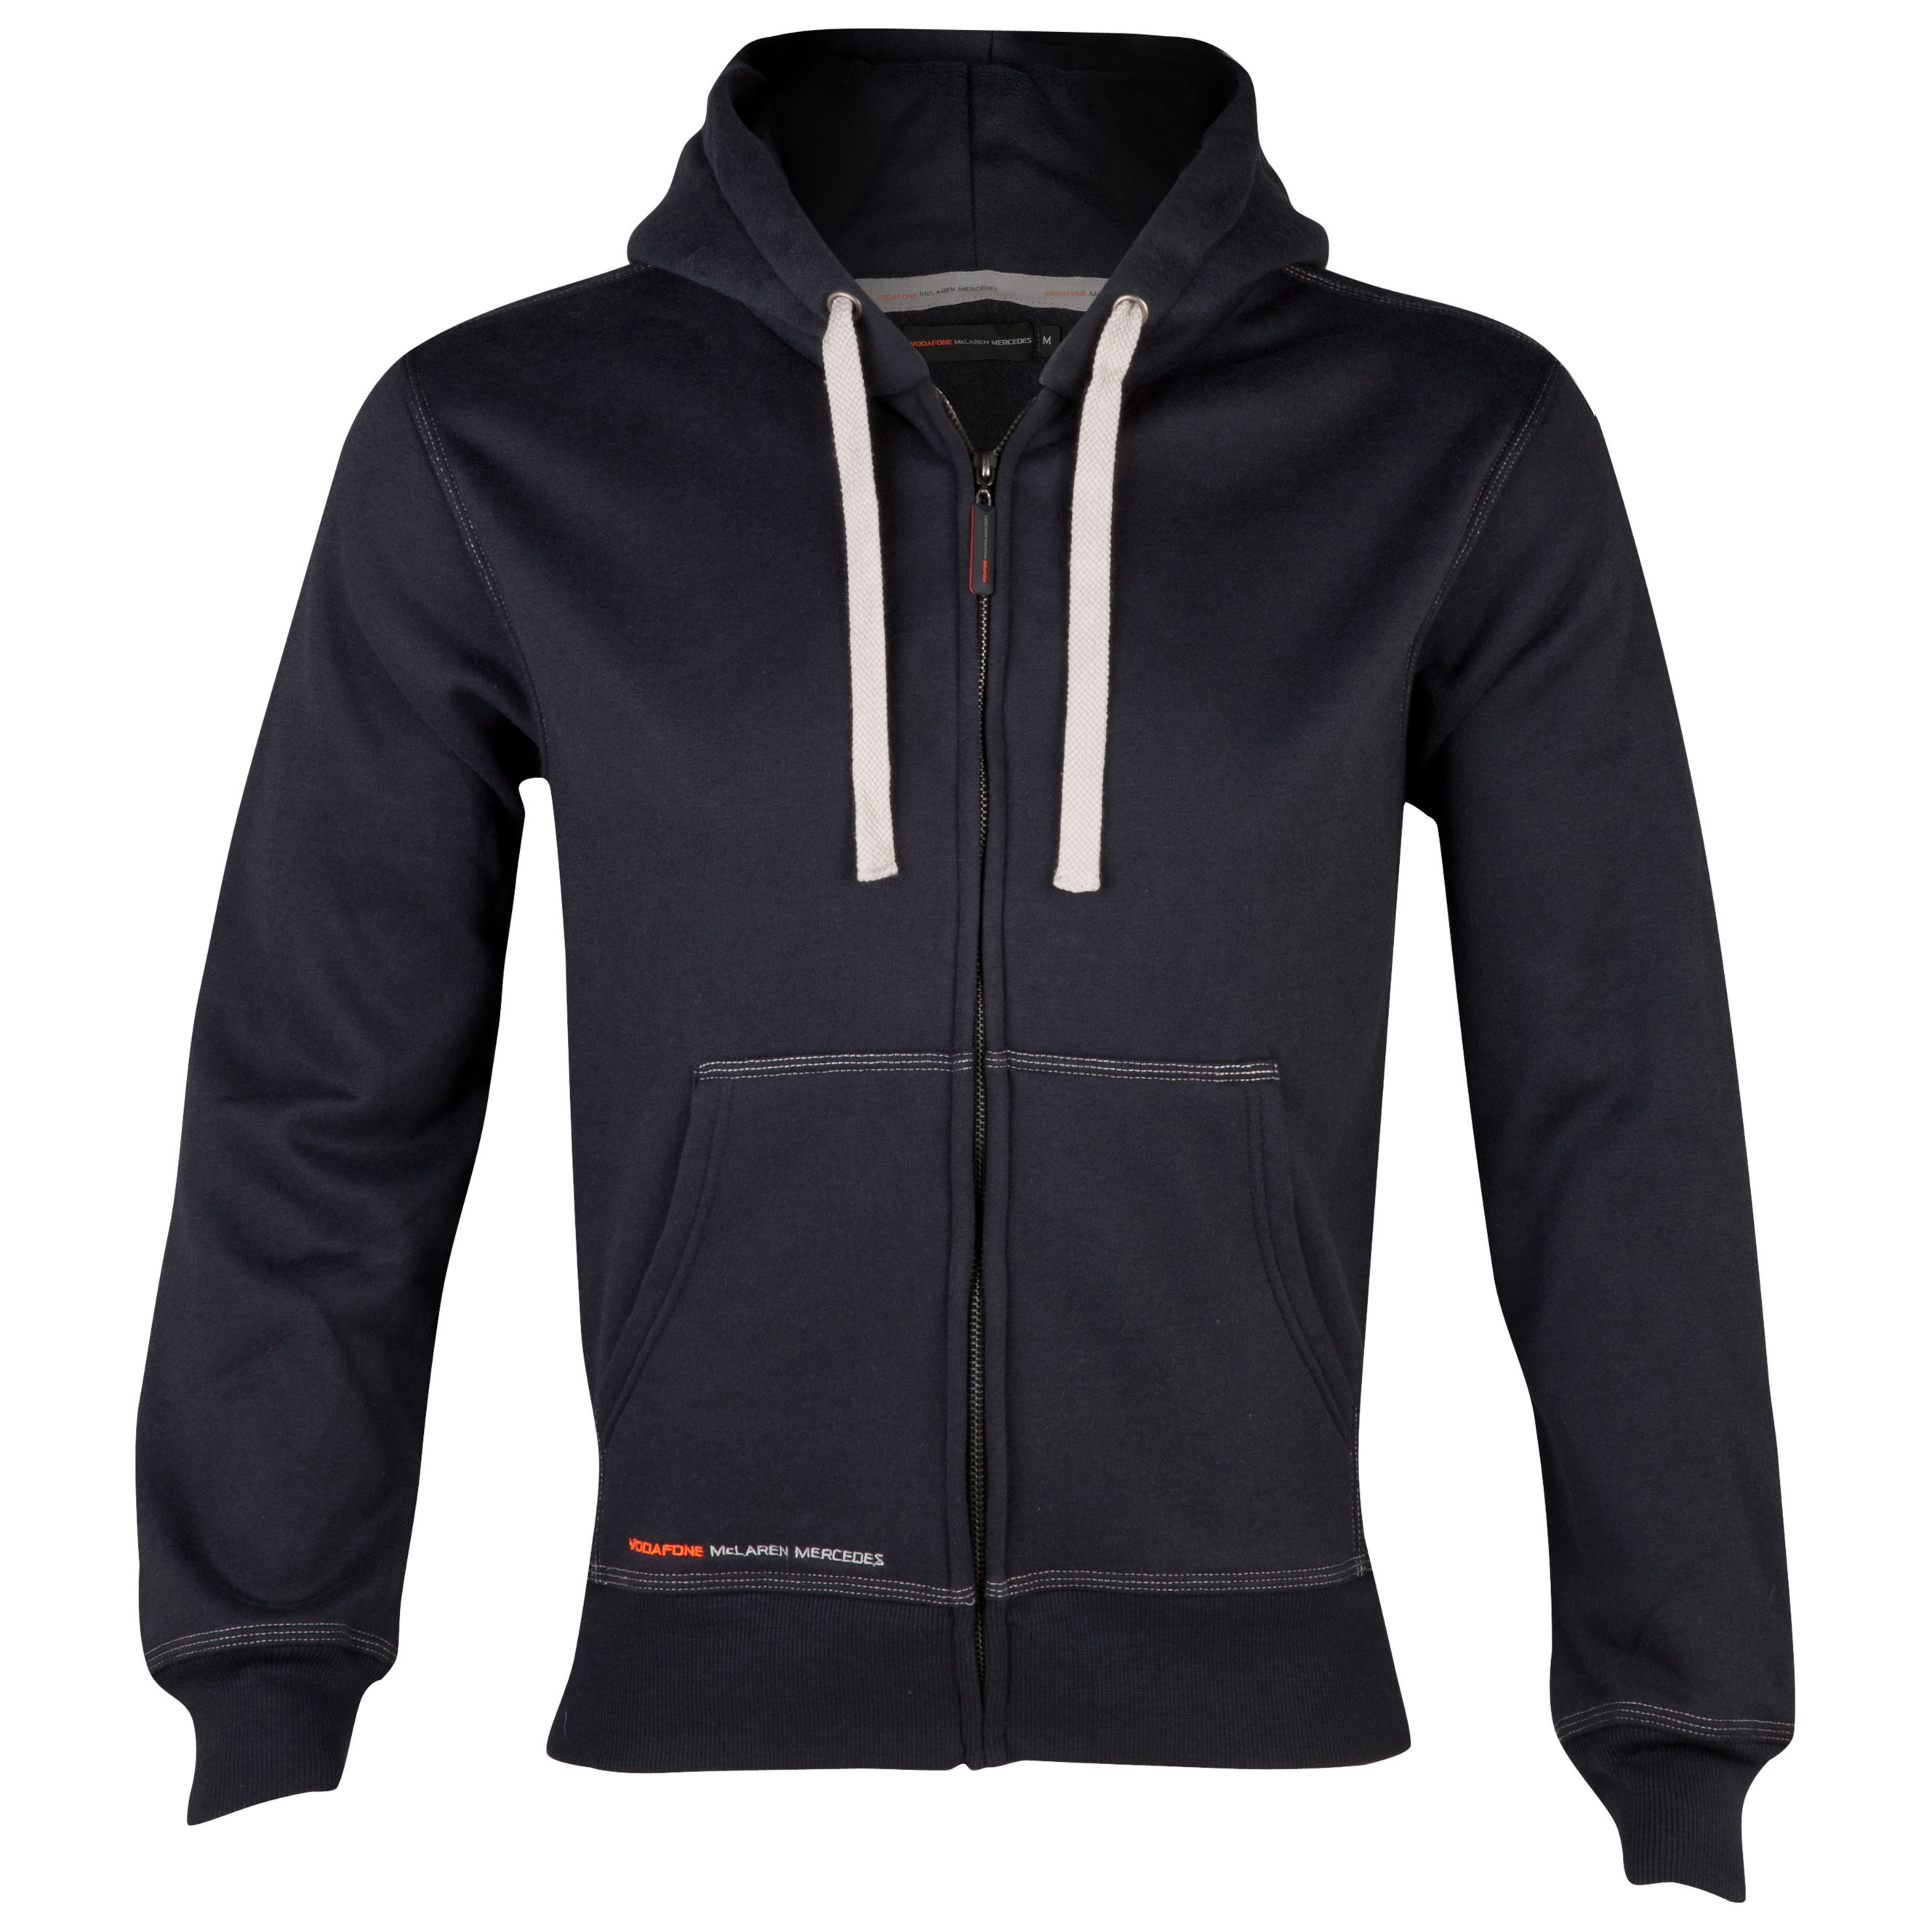 Vodafone McLaren Mercedes Essentials Collection Hoodie